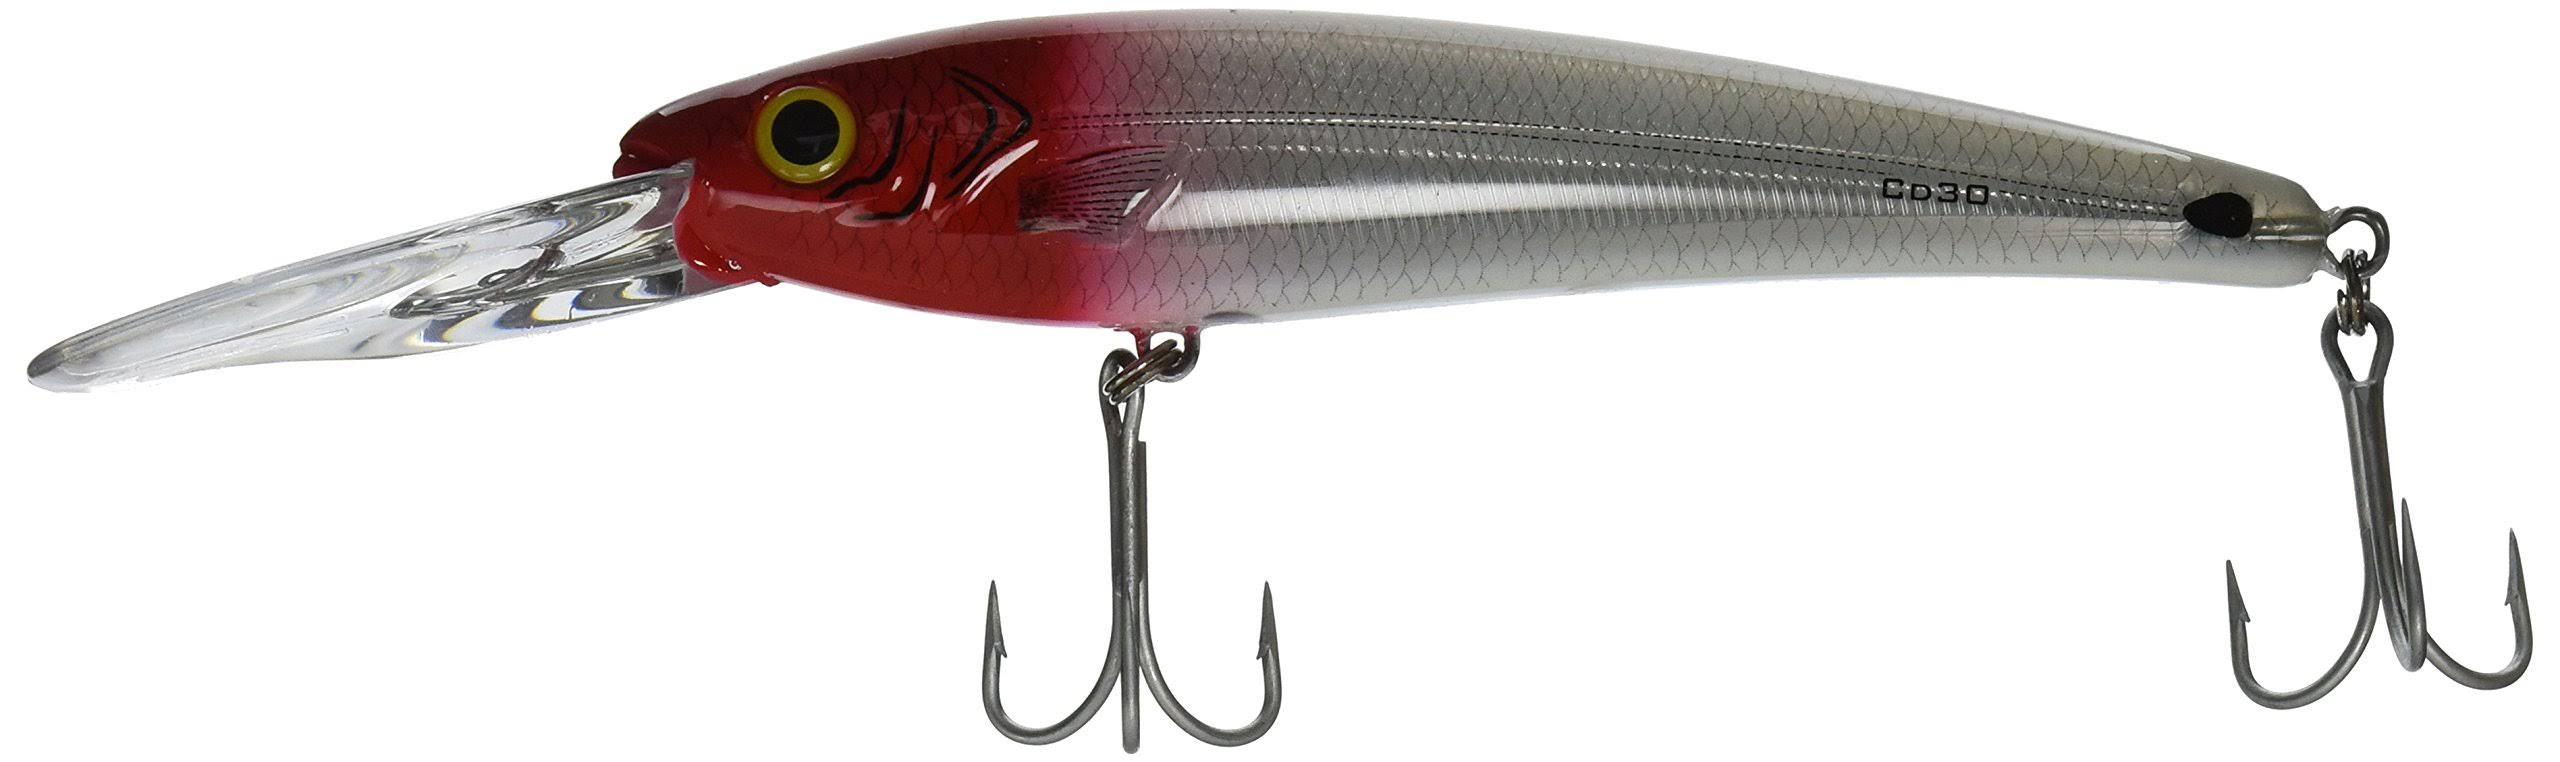 Bomber Saltwater Grade Certified Depth Lure